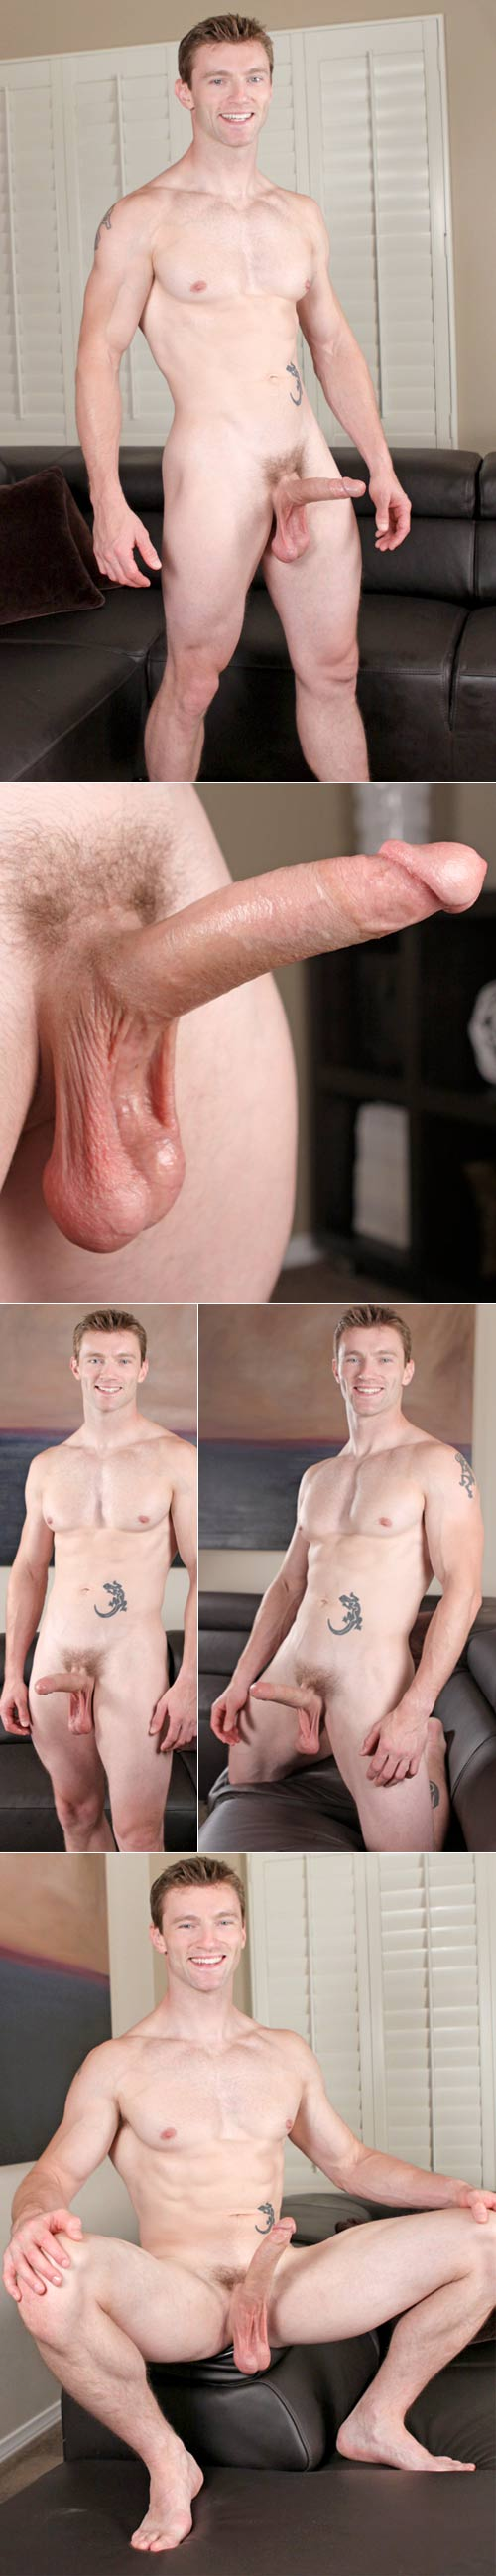 Dennis at SeanCody